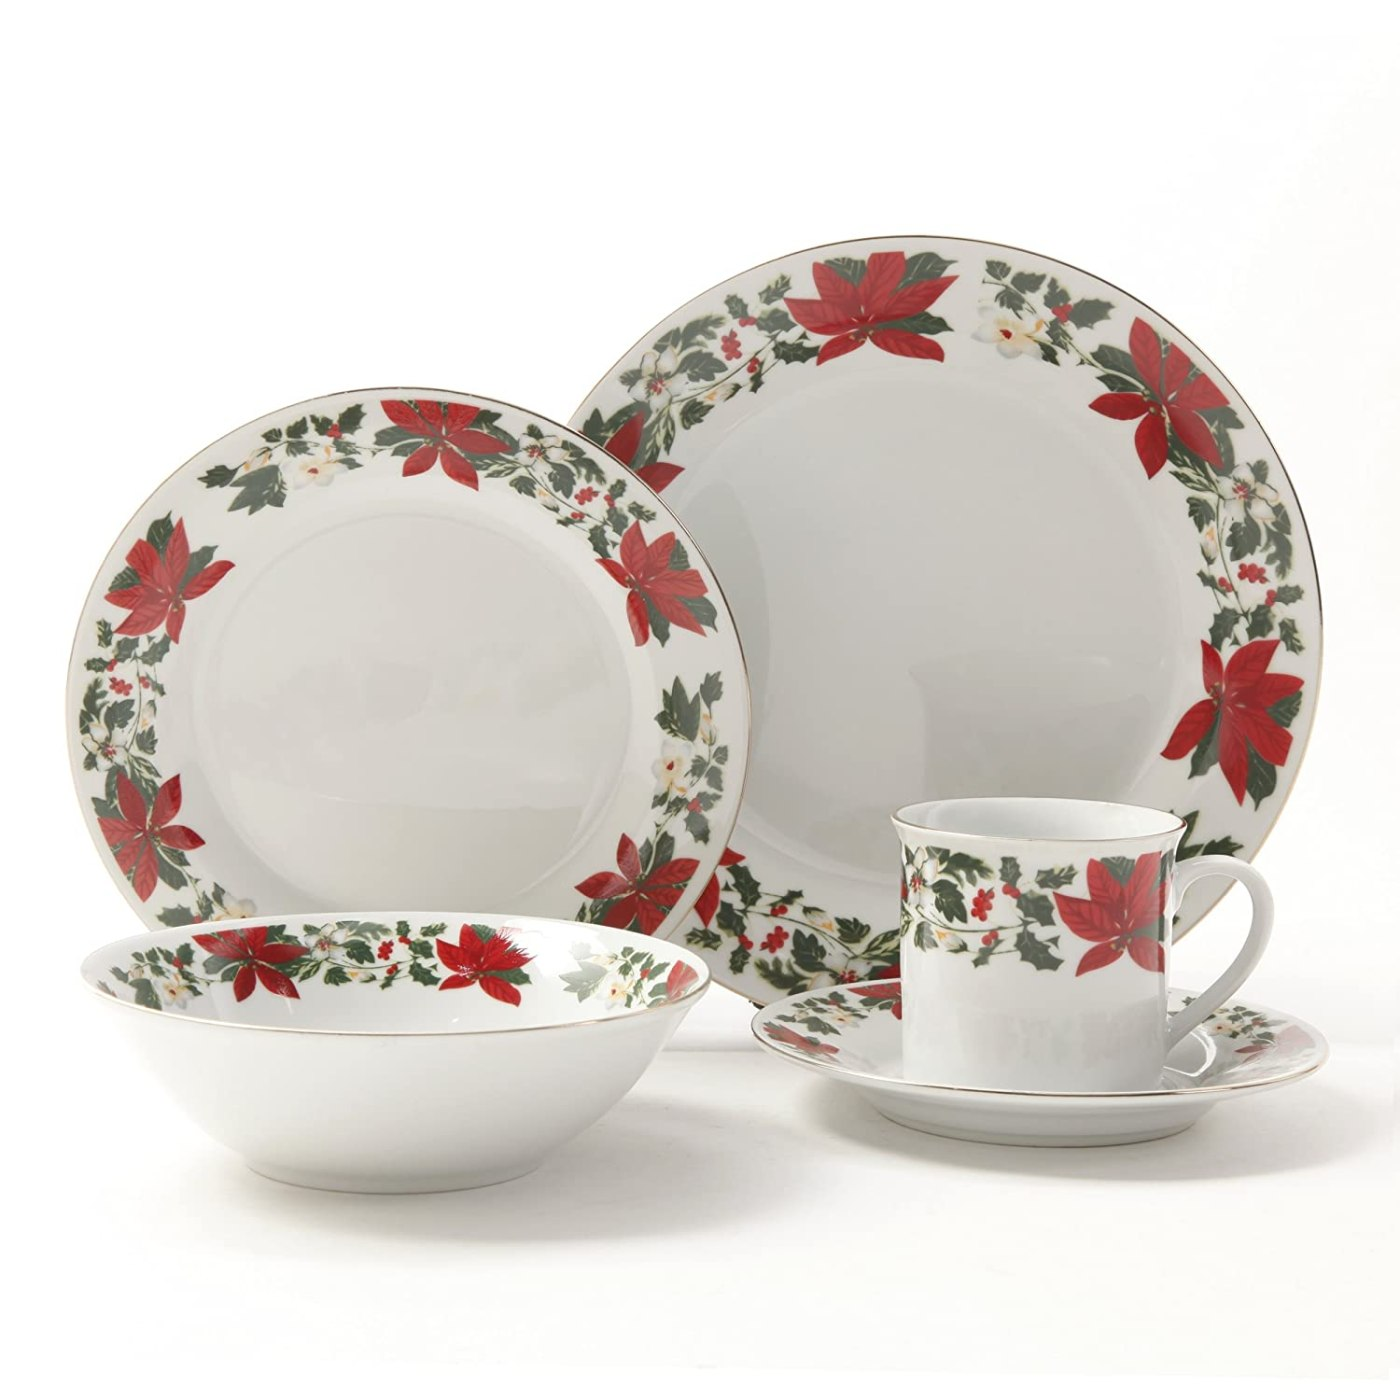 Gibson Poinsettia Holiday Dinnerware Set, 20-Piece